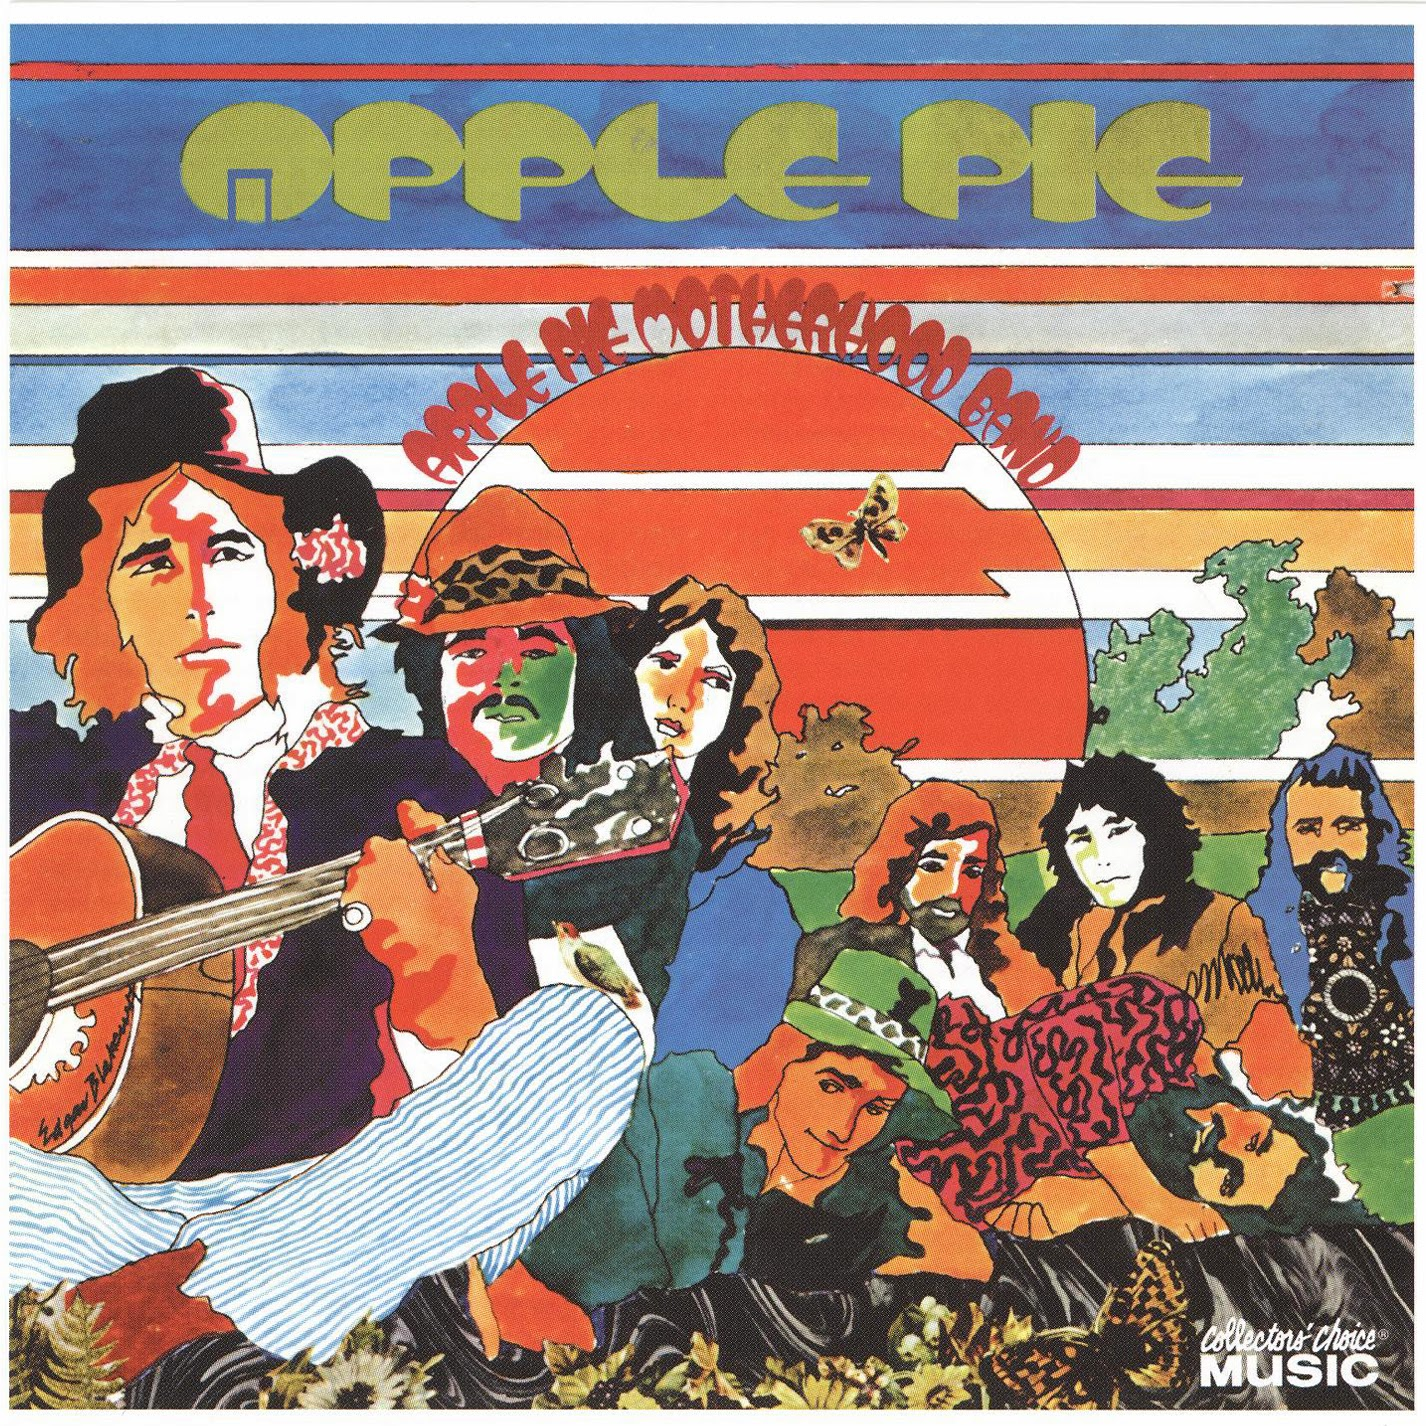 Apple Pie Motherhood Band - Apple Pie LP 1969